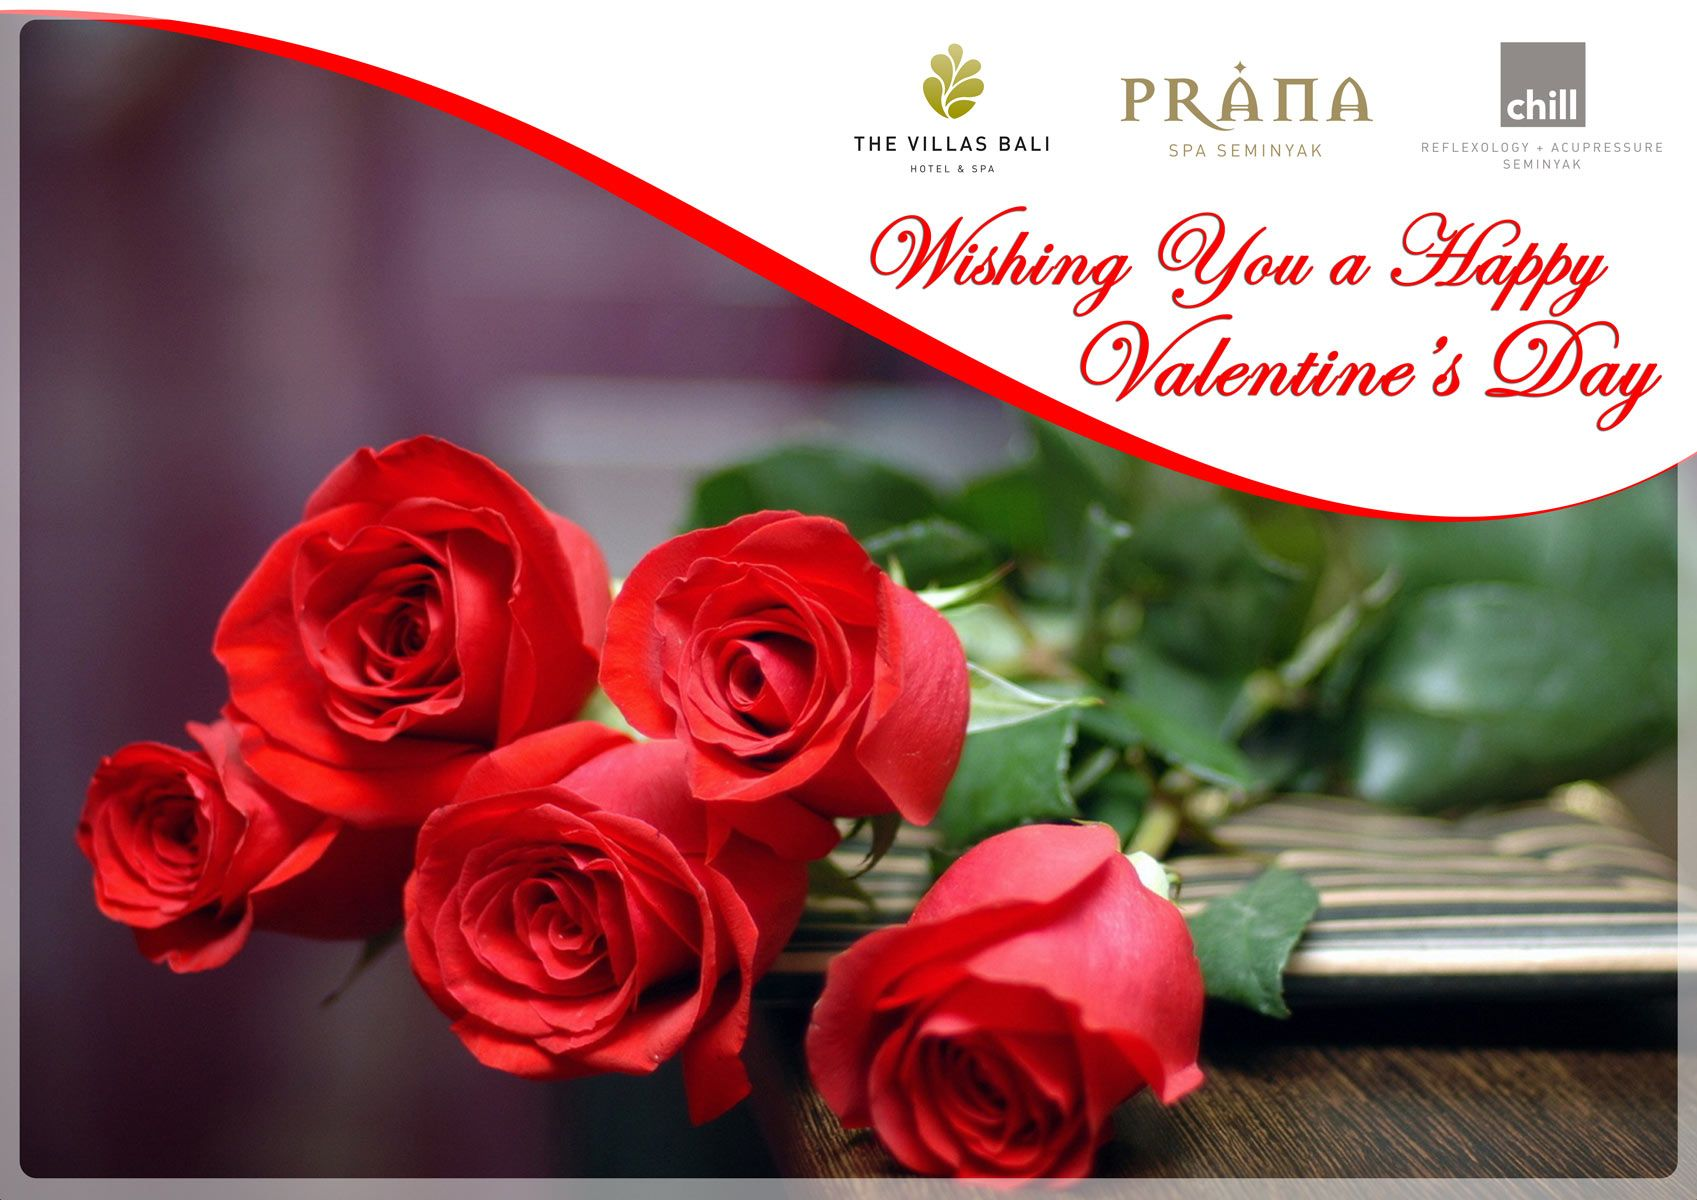 The villas wishes all our friends a very happy valentines day the the villas wishes all our friends a very happy valentines day m4hsunfo